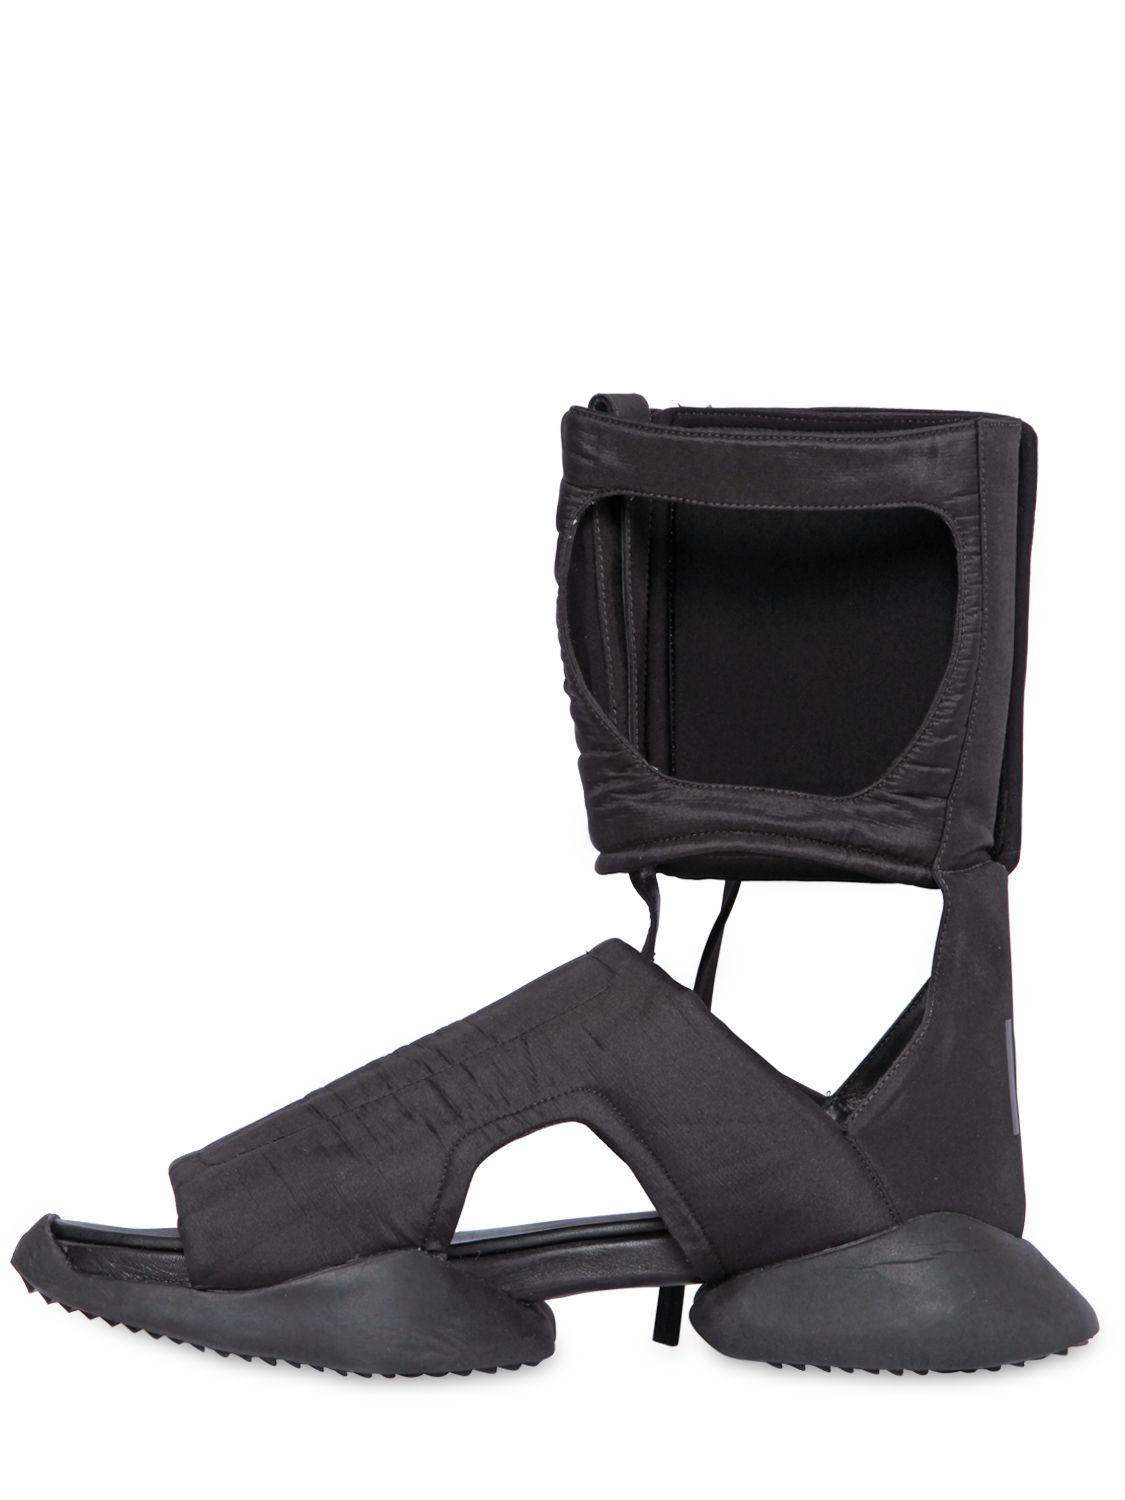 a9f8f6d2f084 Lyst - Rick Owens Padded Nylon Cargo High Top Sandals in Black for Men